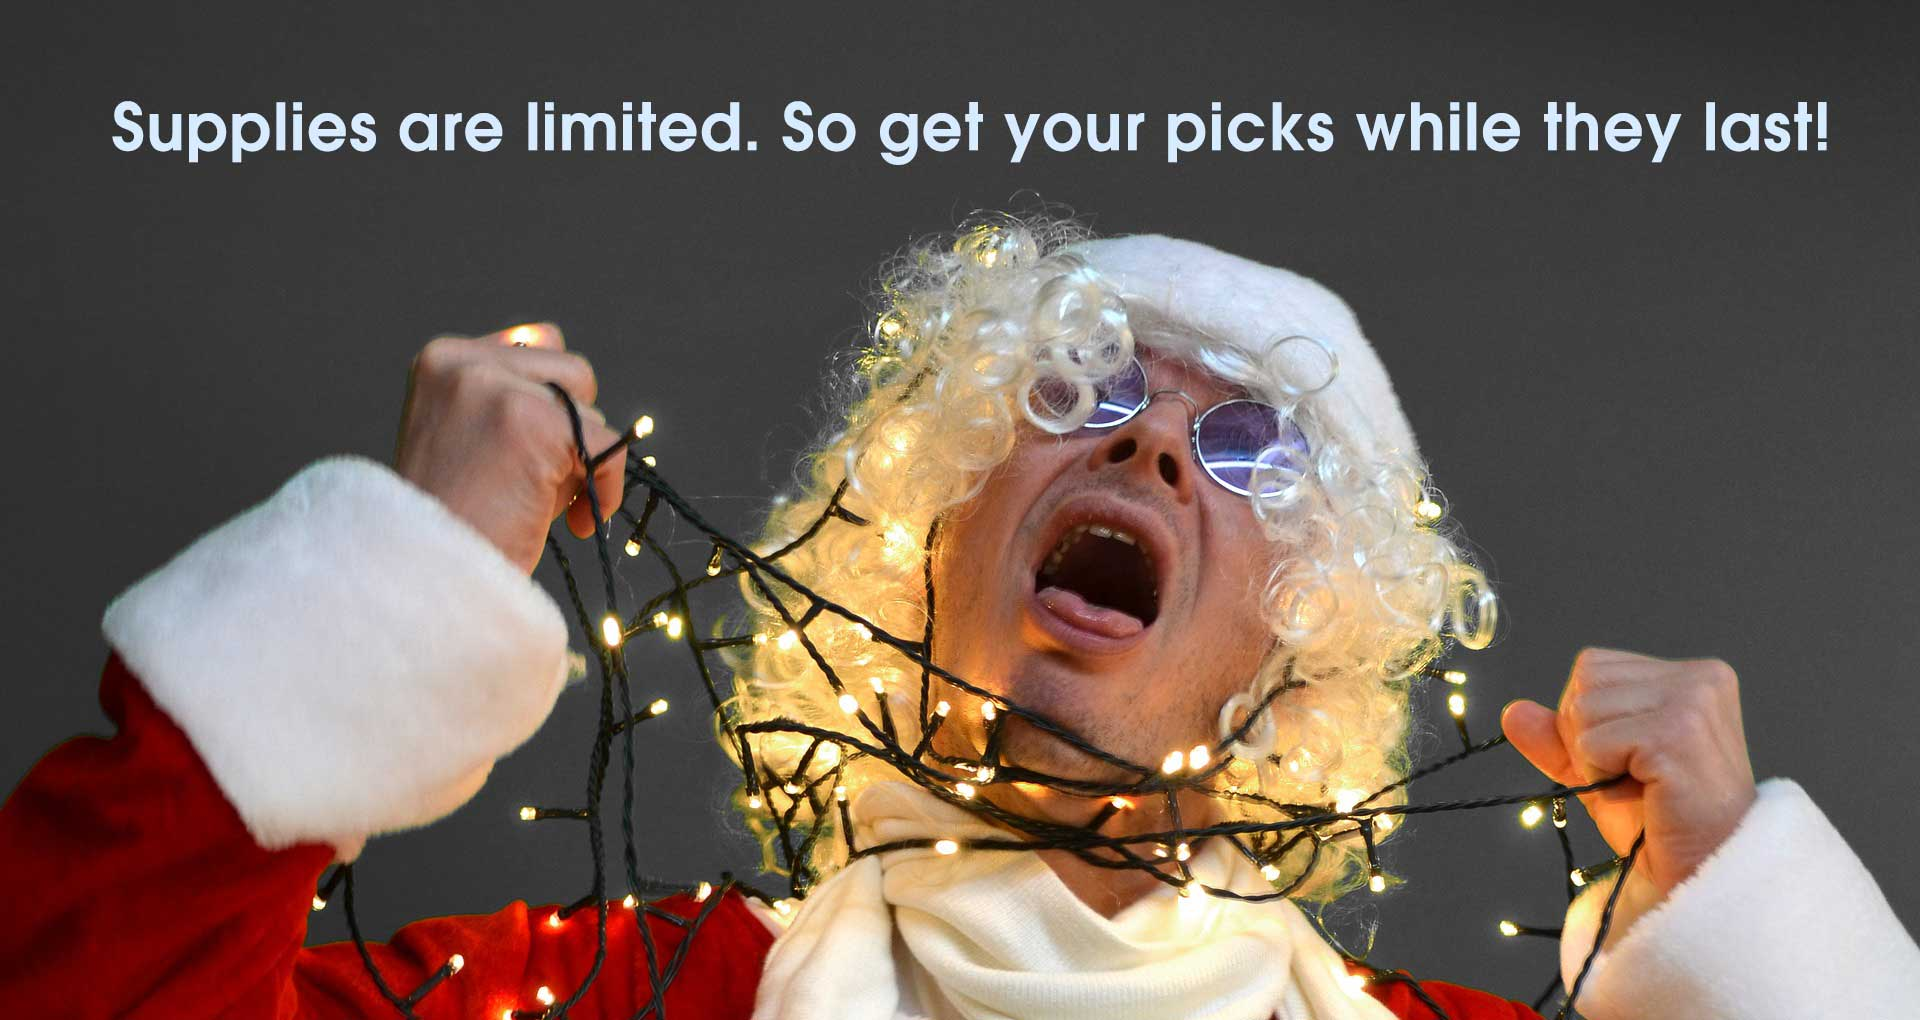 Cheap-Christmas-Gifts-Gift-Limited-Supply-Busy-Funny-Santa-A-SFW72